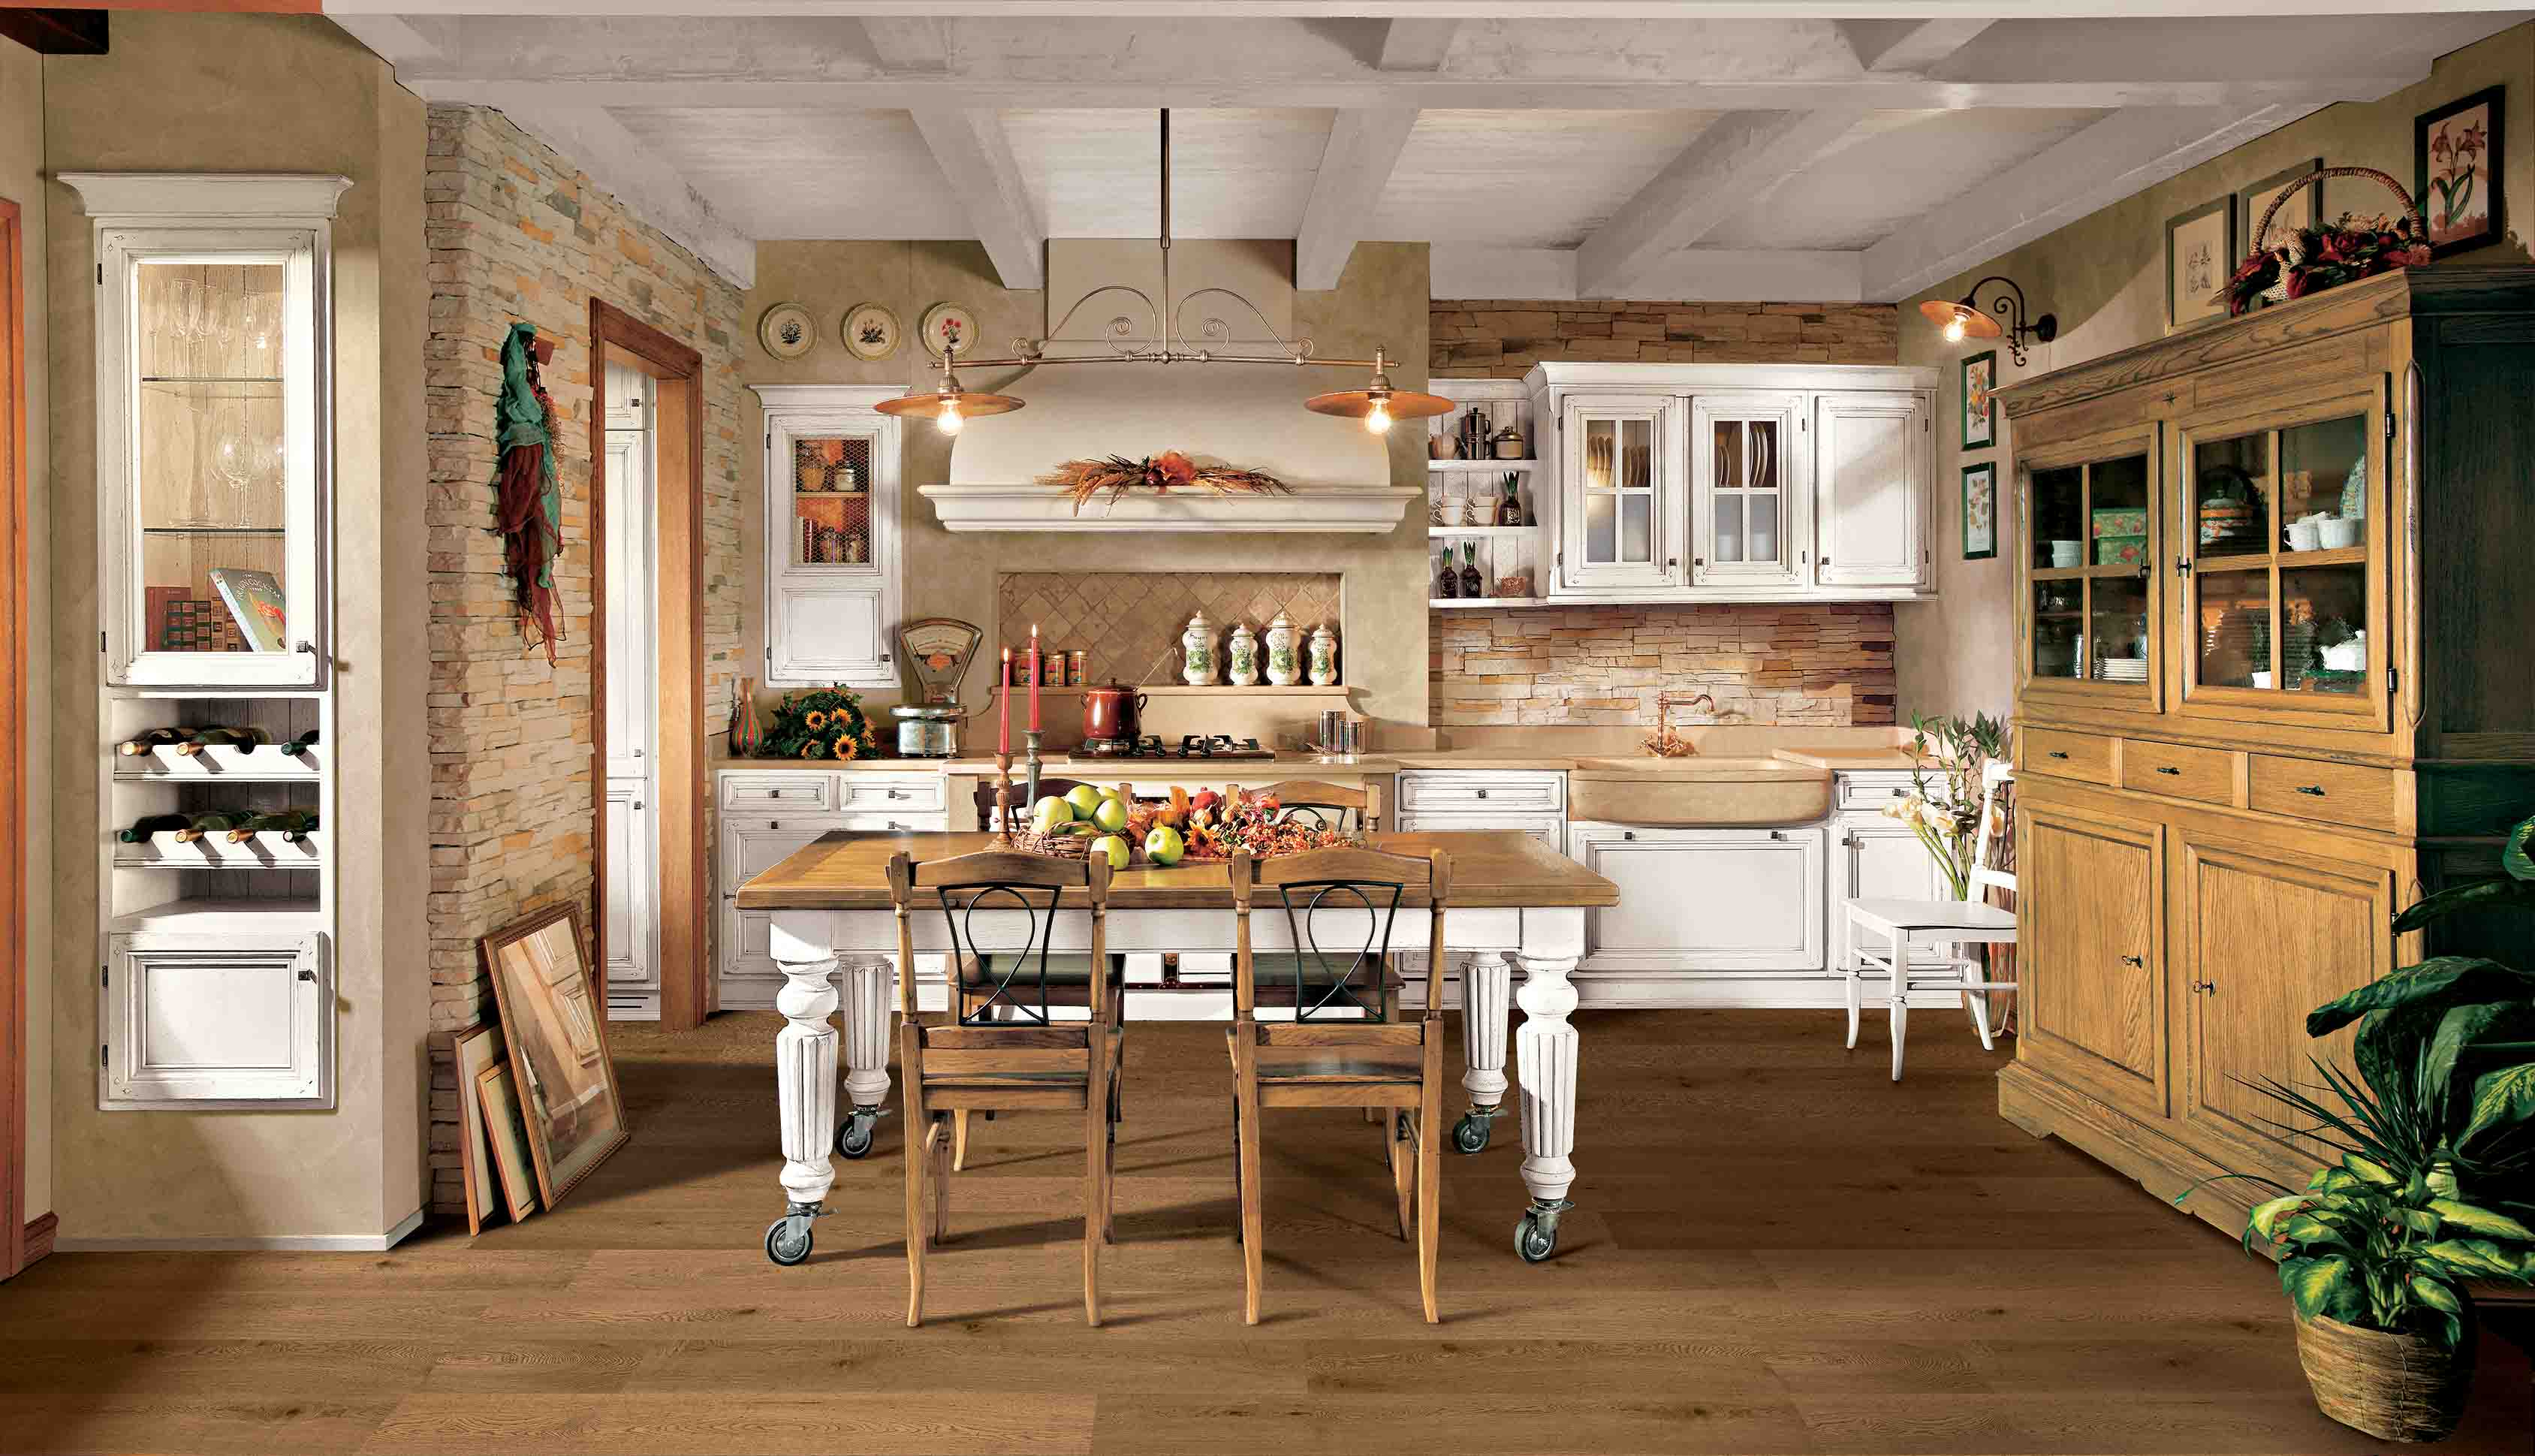 Cucina Old Style - La cucina country intramontabile | L ...